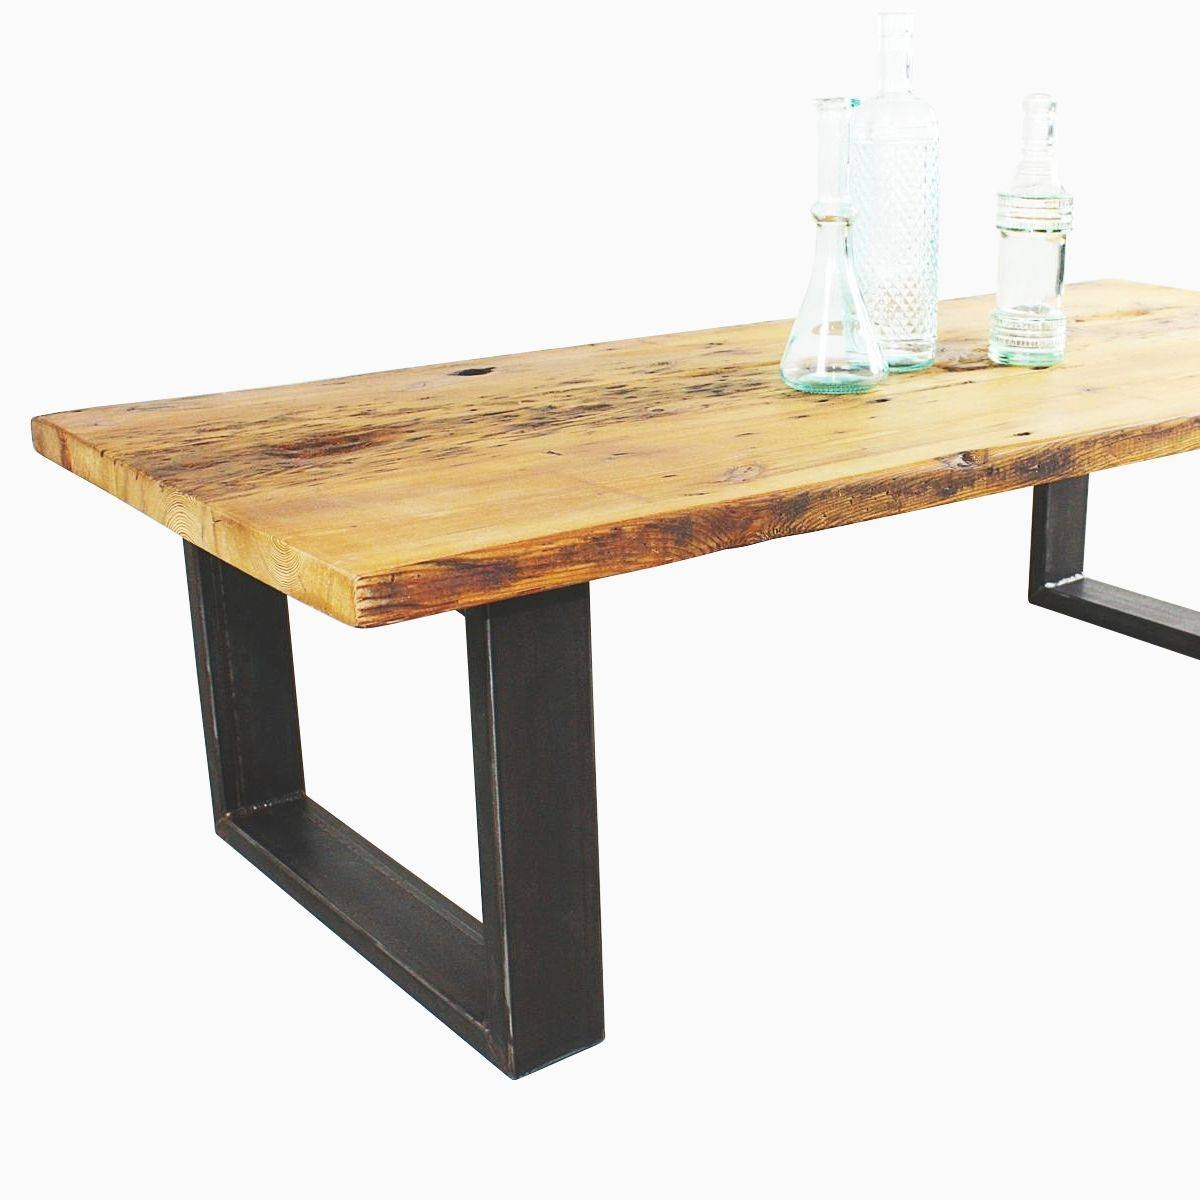 Buy A Hand Made Reclaimed Pine Coffee Table, Made To Order From within Old Pine Coffee Tables (Image 5 of 30)